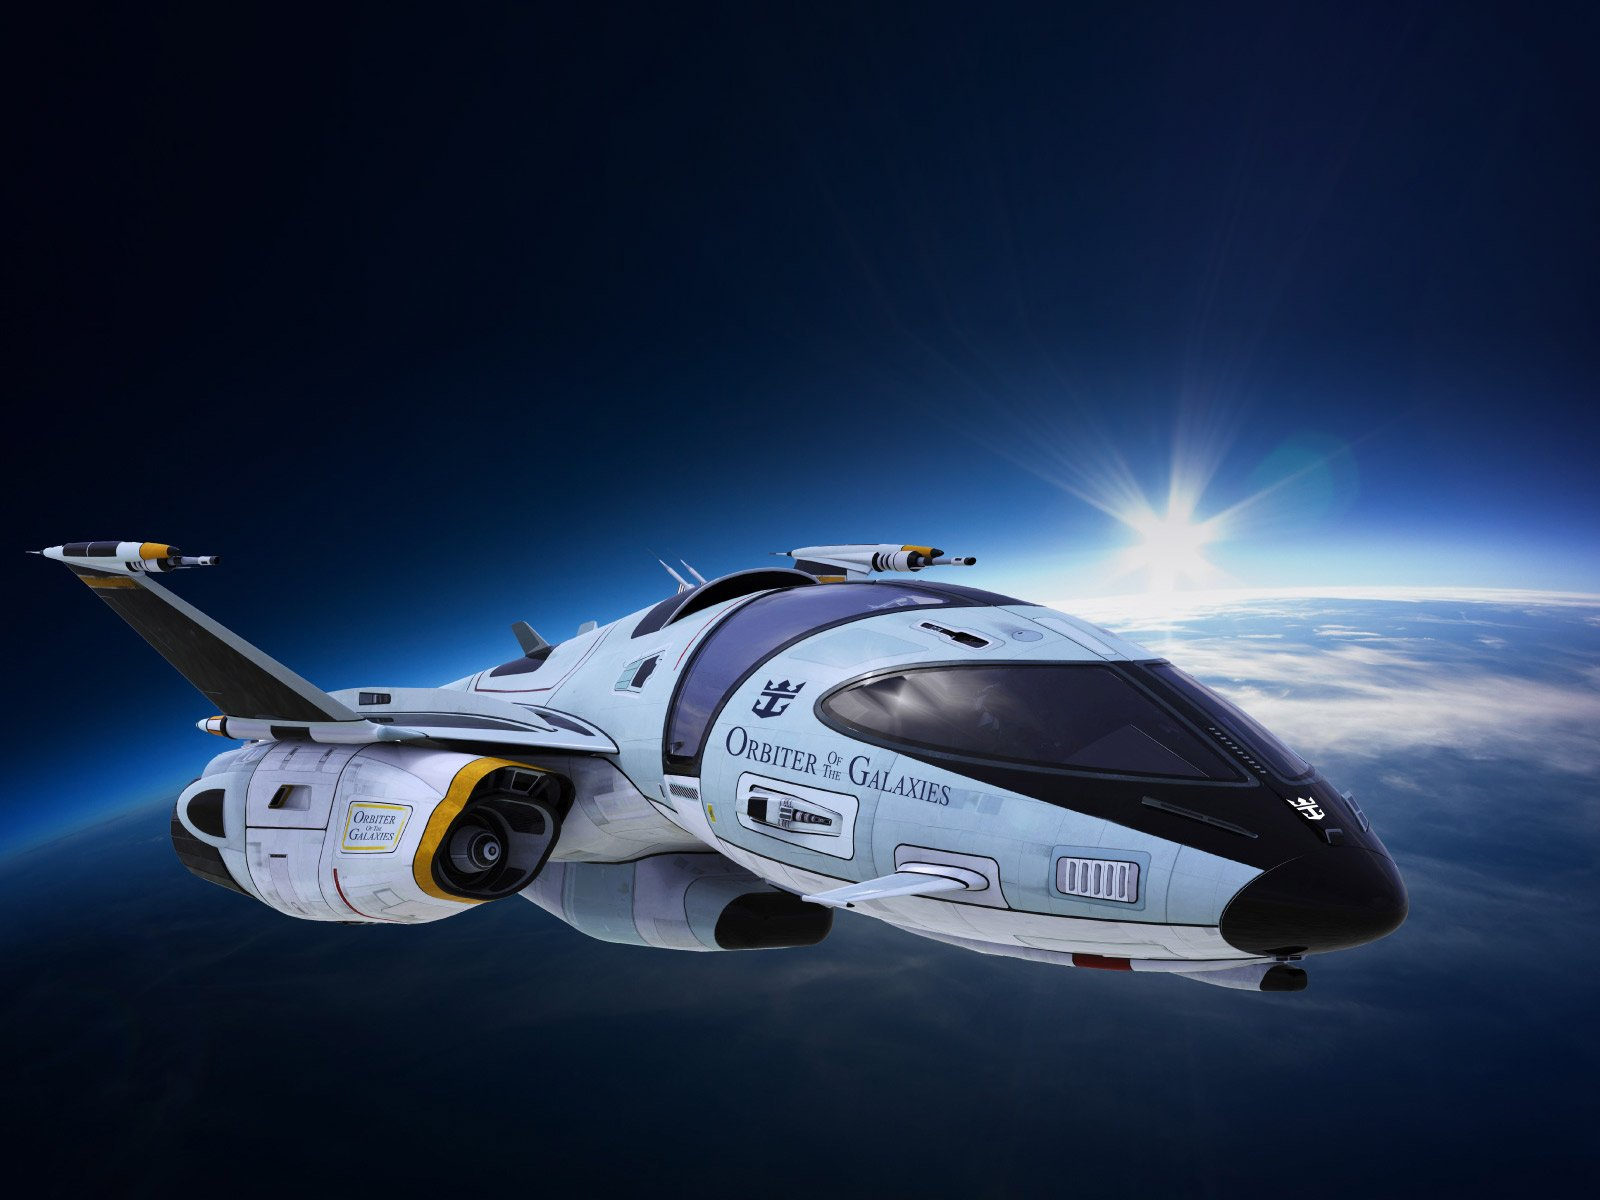 spaceship pictures royal caribbean uk promising space cruises in 2030 royal 6008